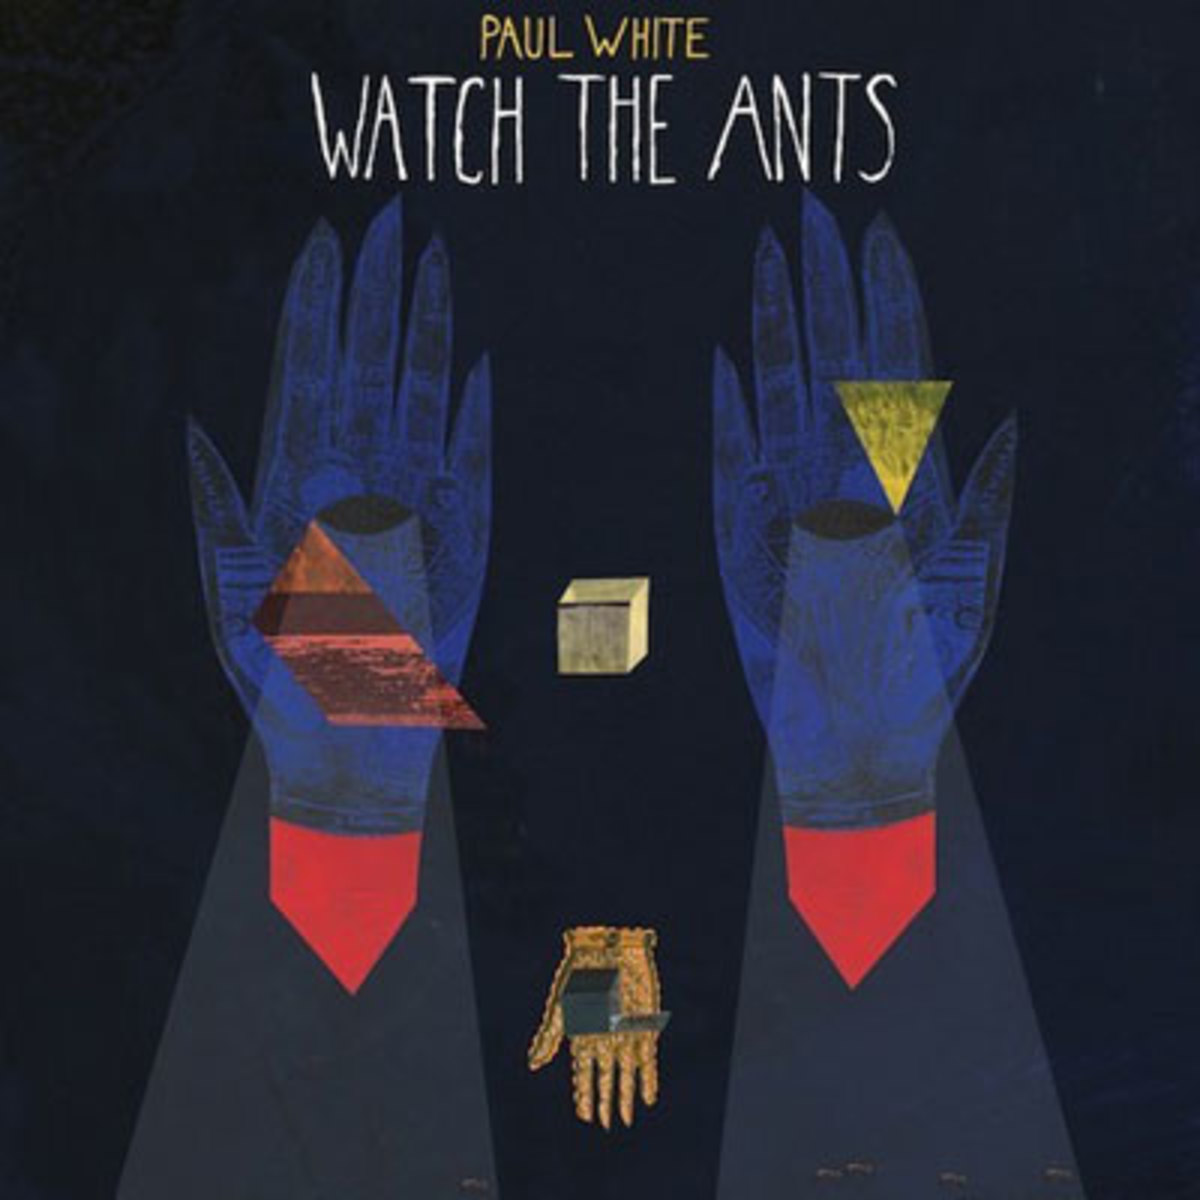 paulwhite-watchtheants.jpg